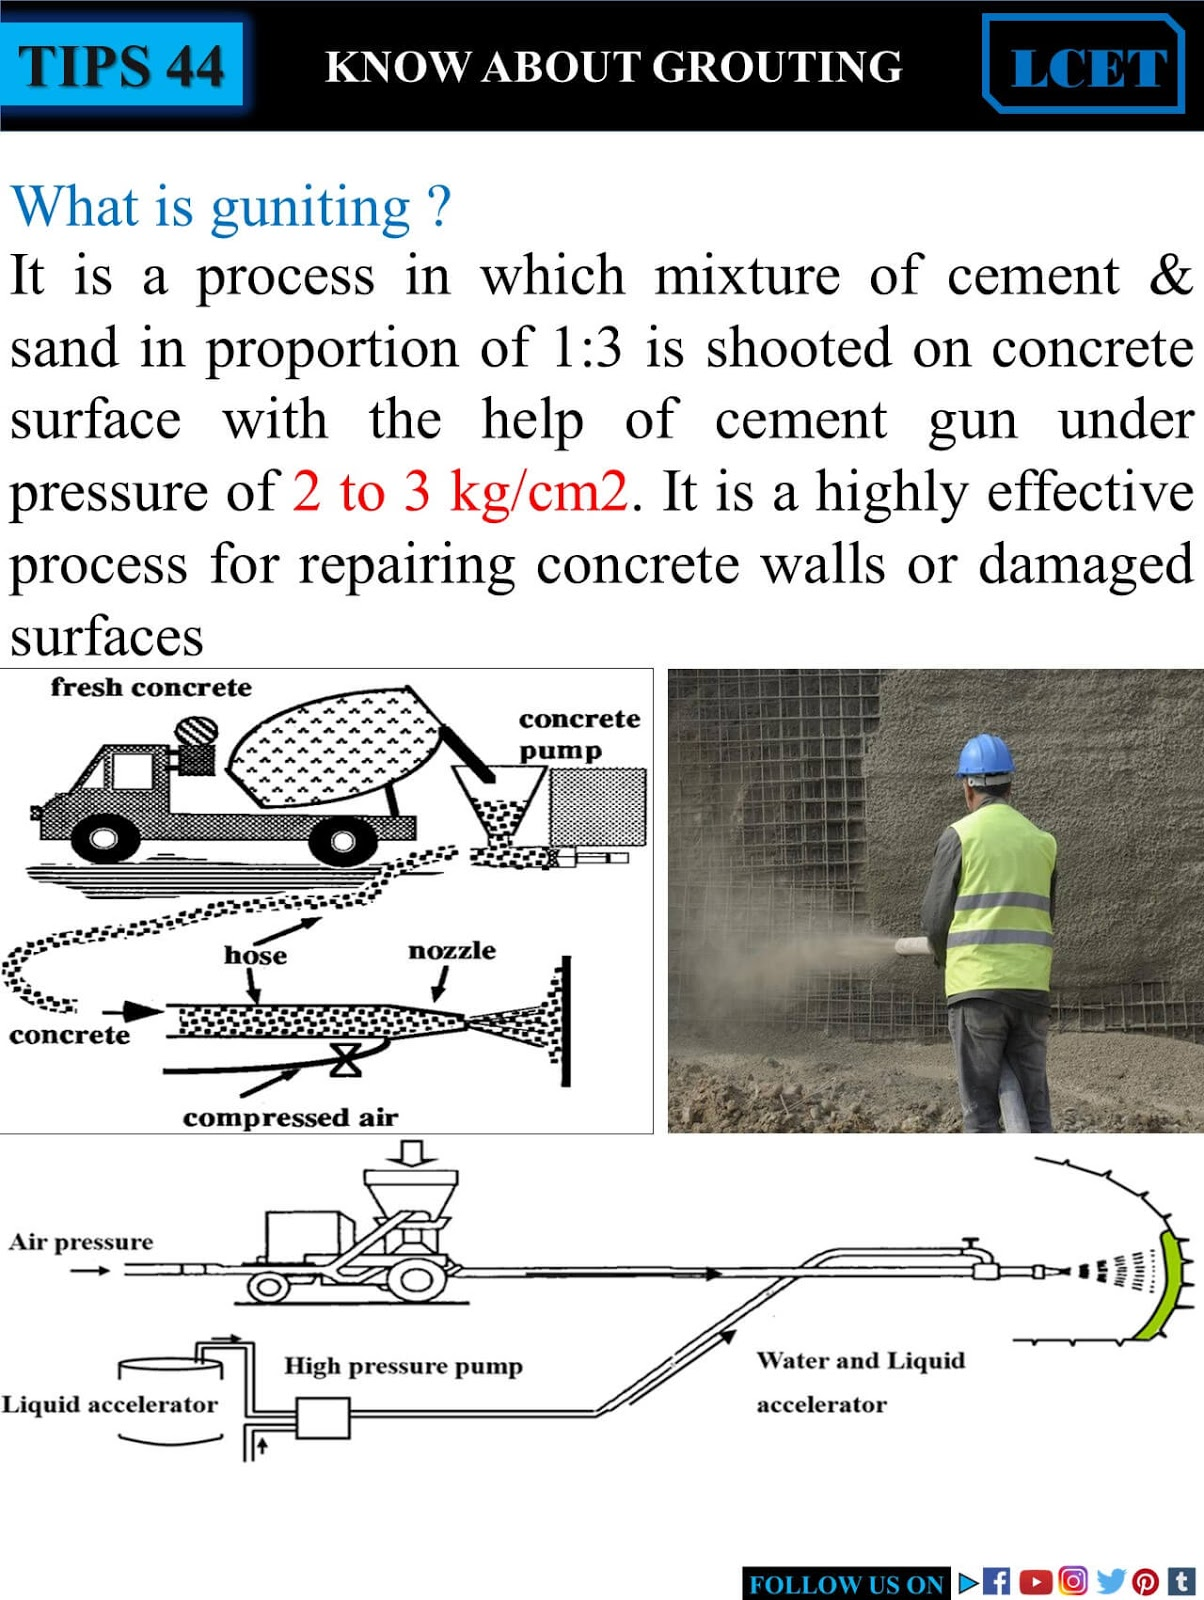 TIPS FOR CIVIL ENGINEERS